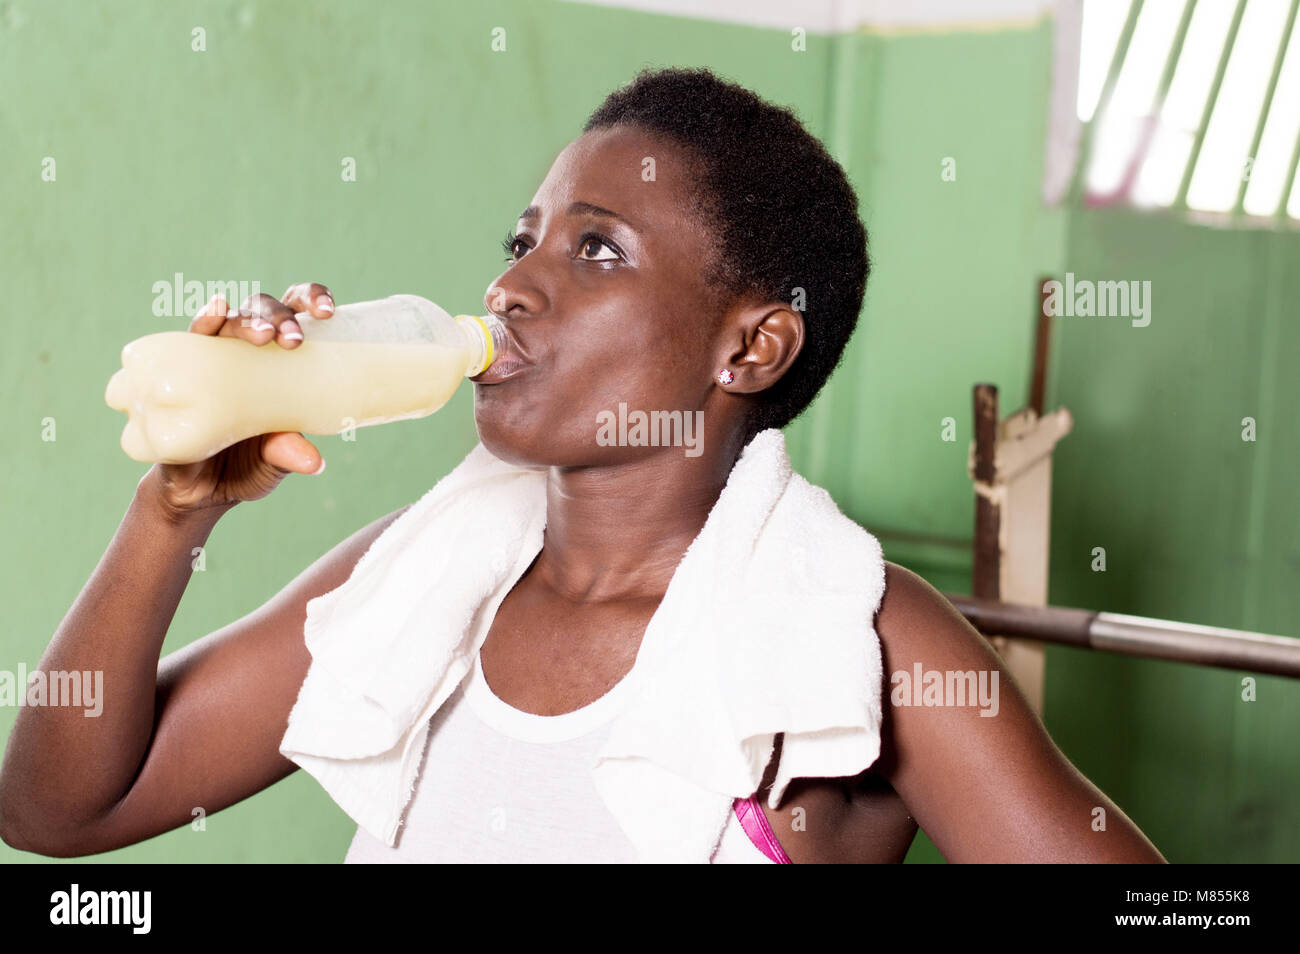 Young athlete drinks fruit juice after sport. - Stock Image